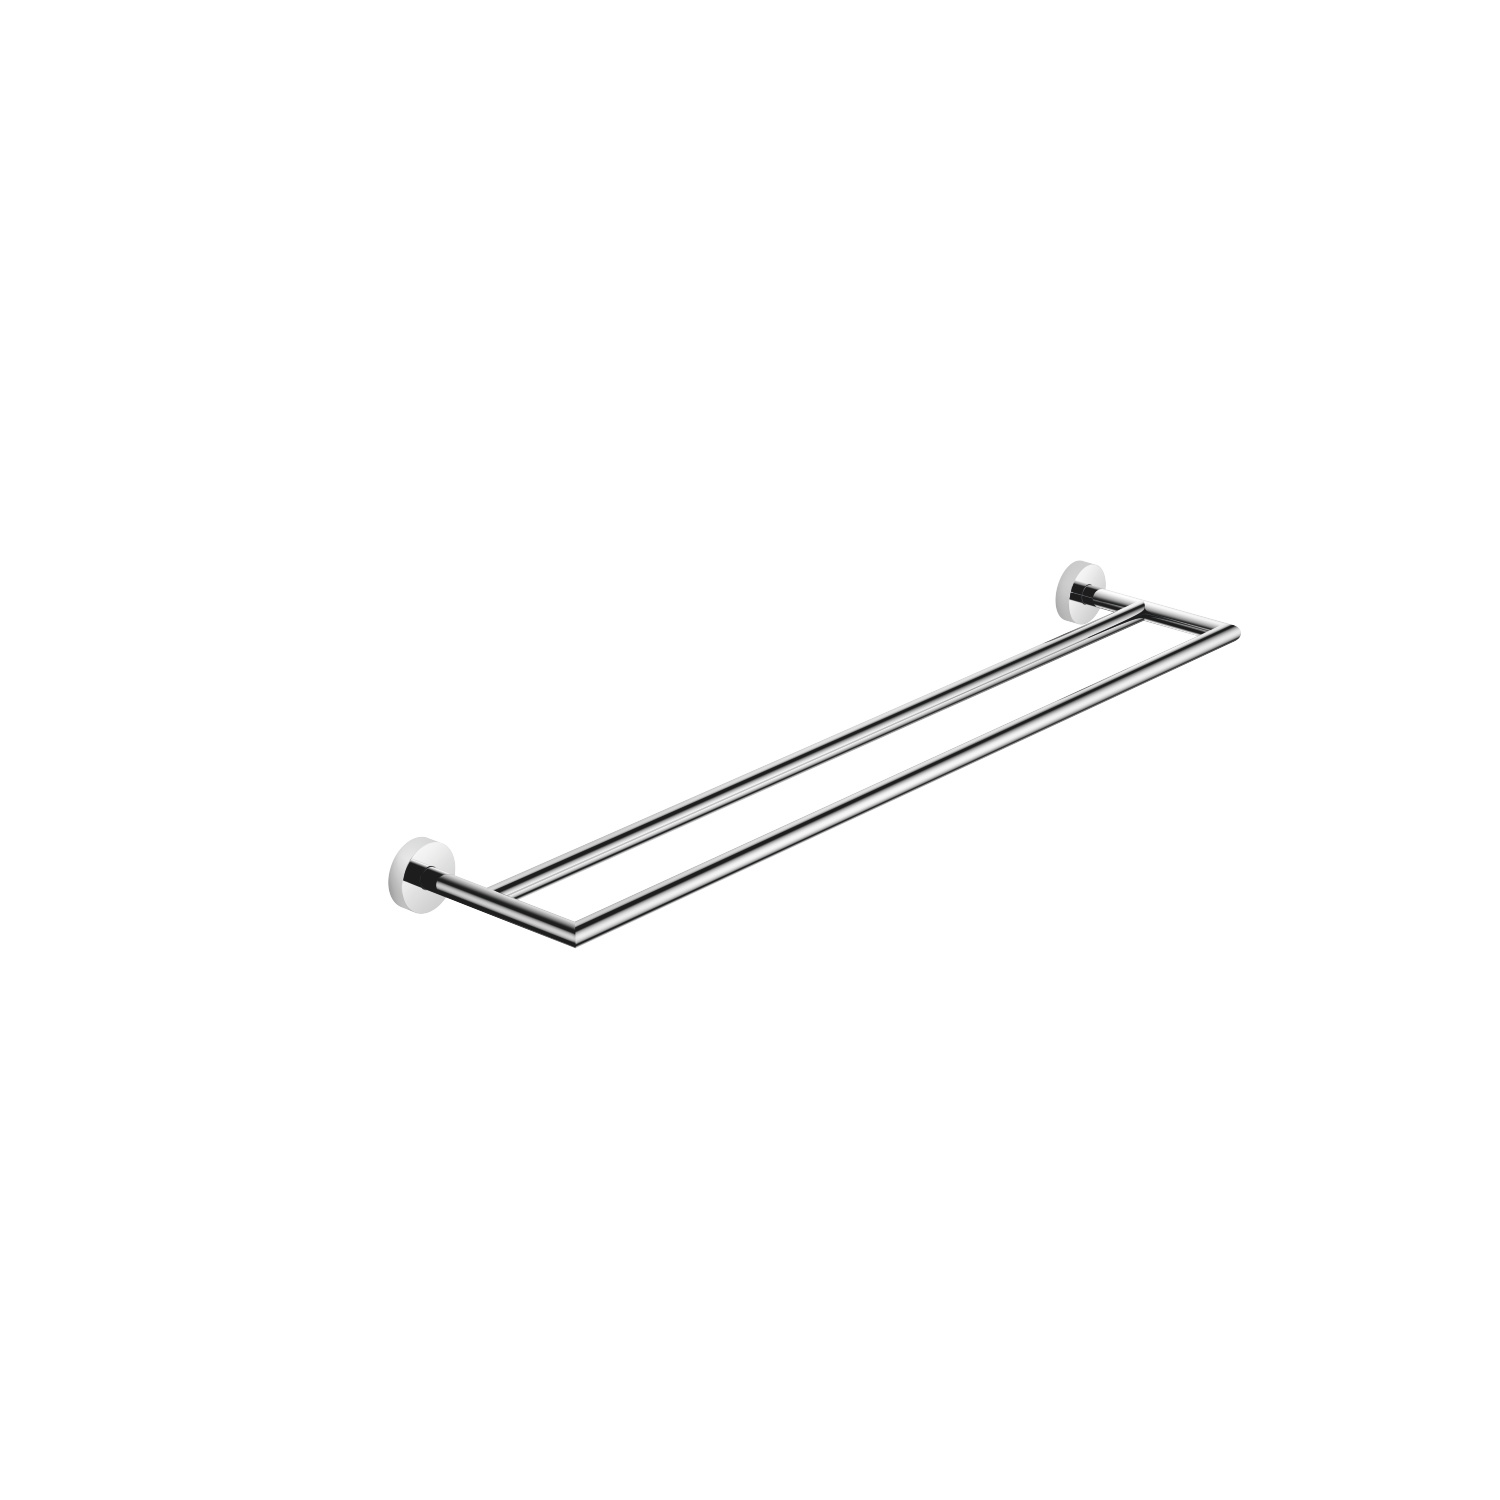 Towel bar two-piece - polished chrome